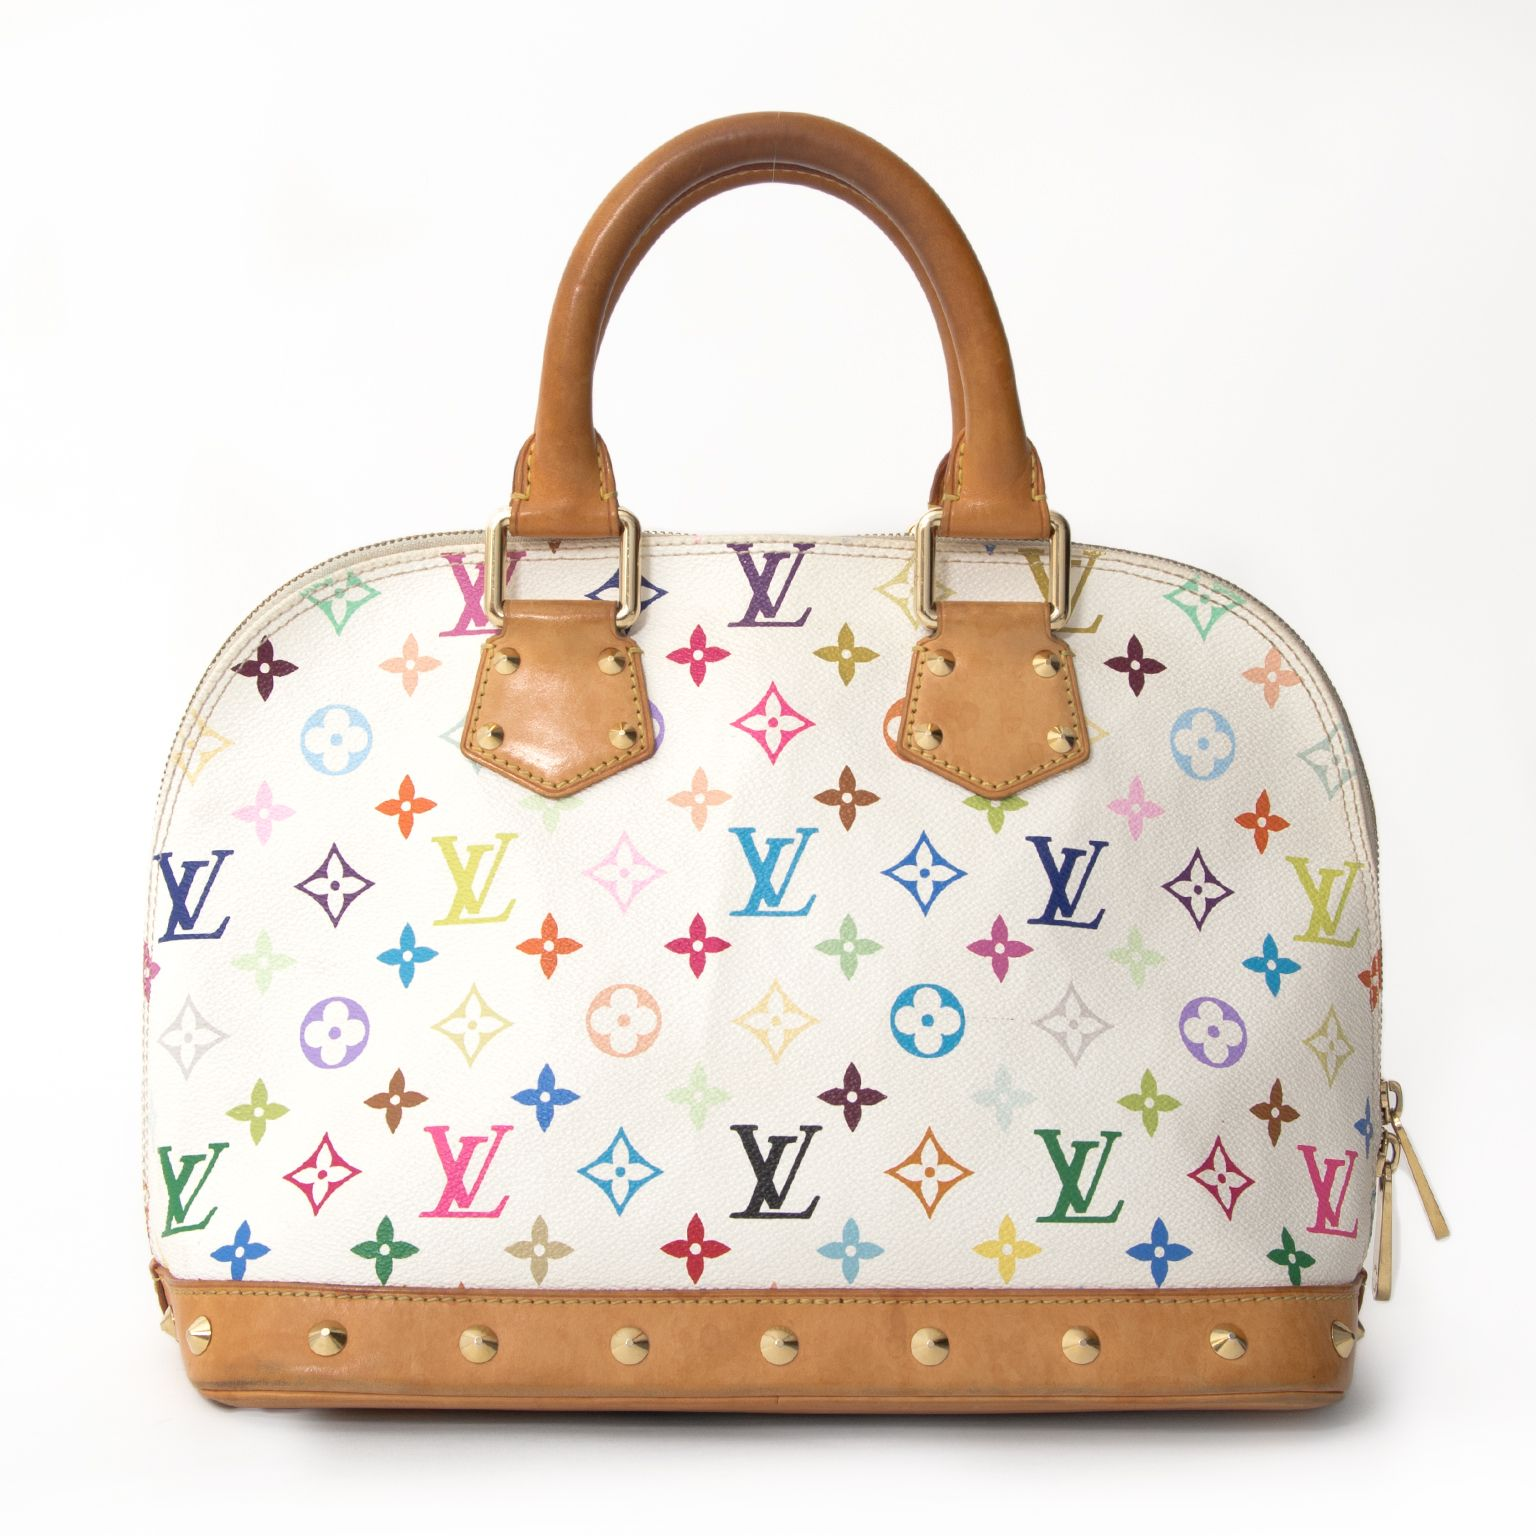 54cbb5a85e550 Louis Vuitton Murakami Multicolore Monogram White Alma